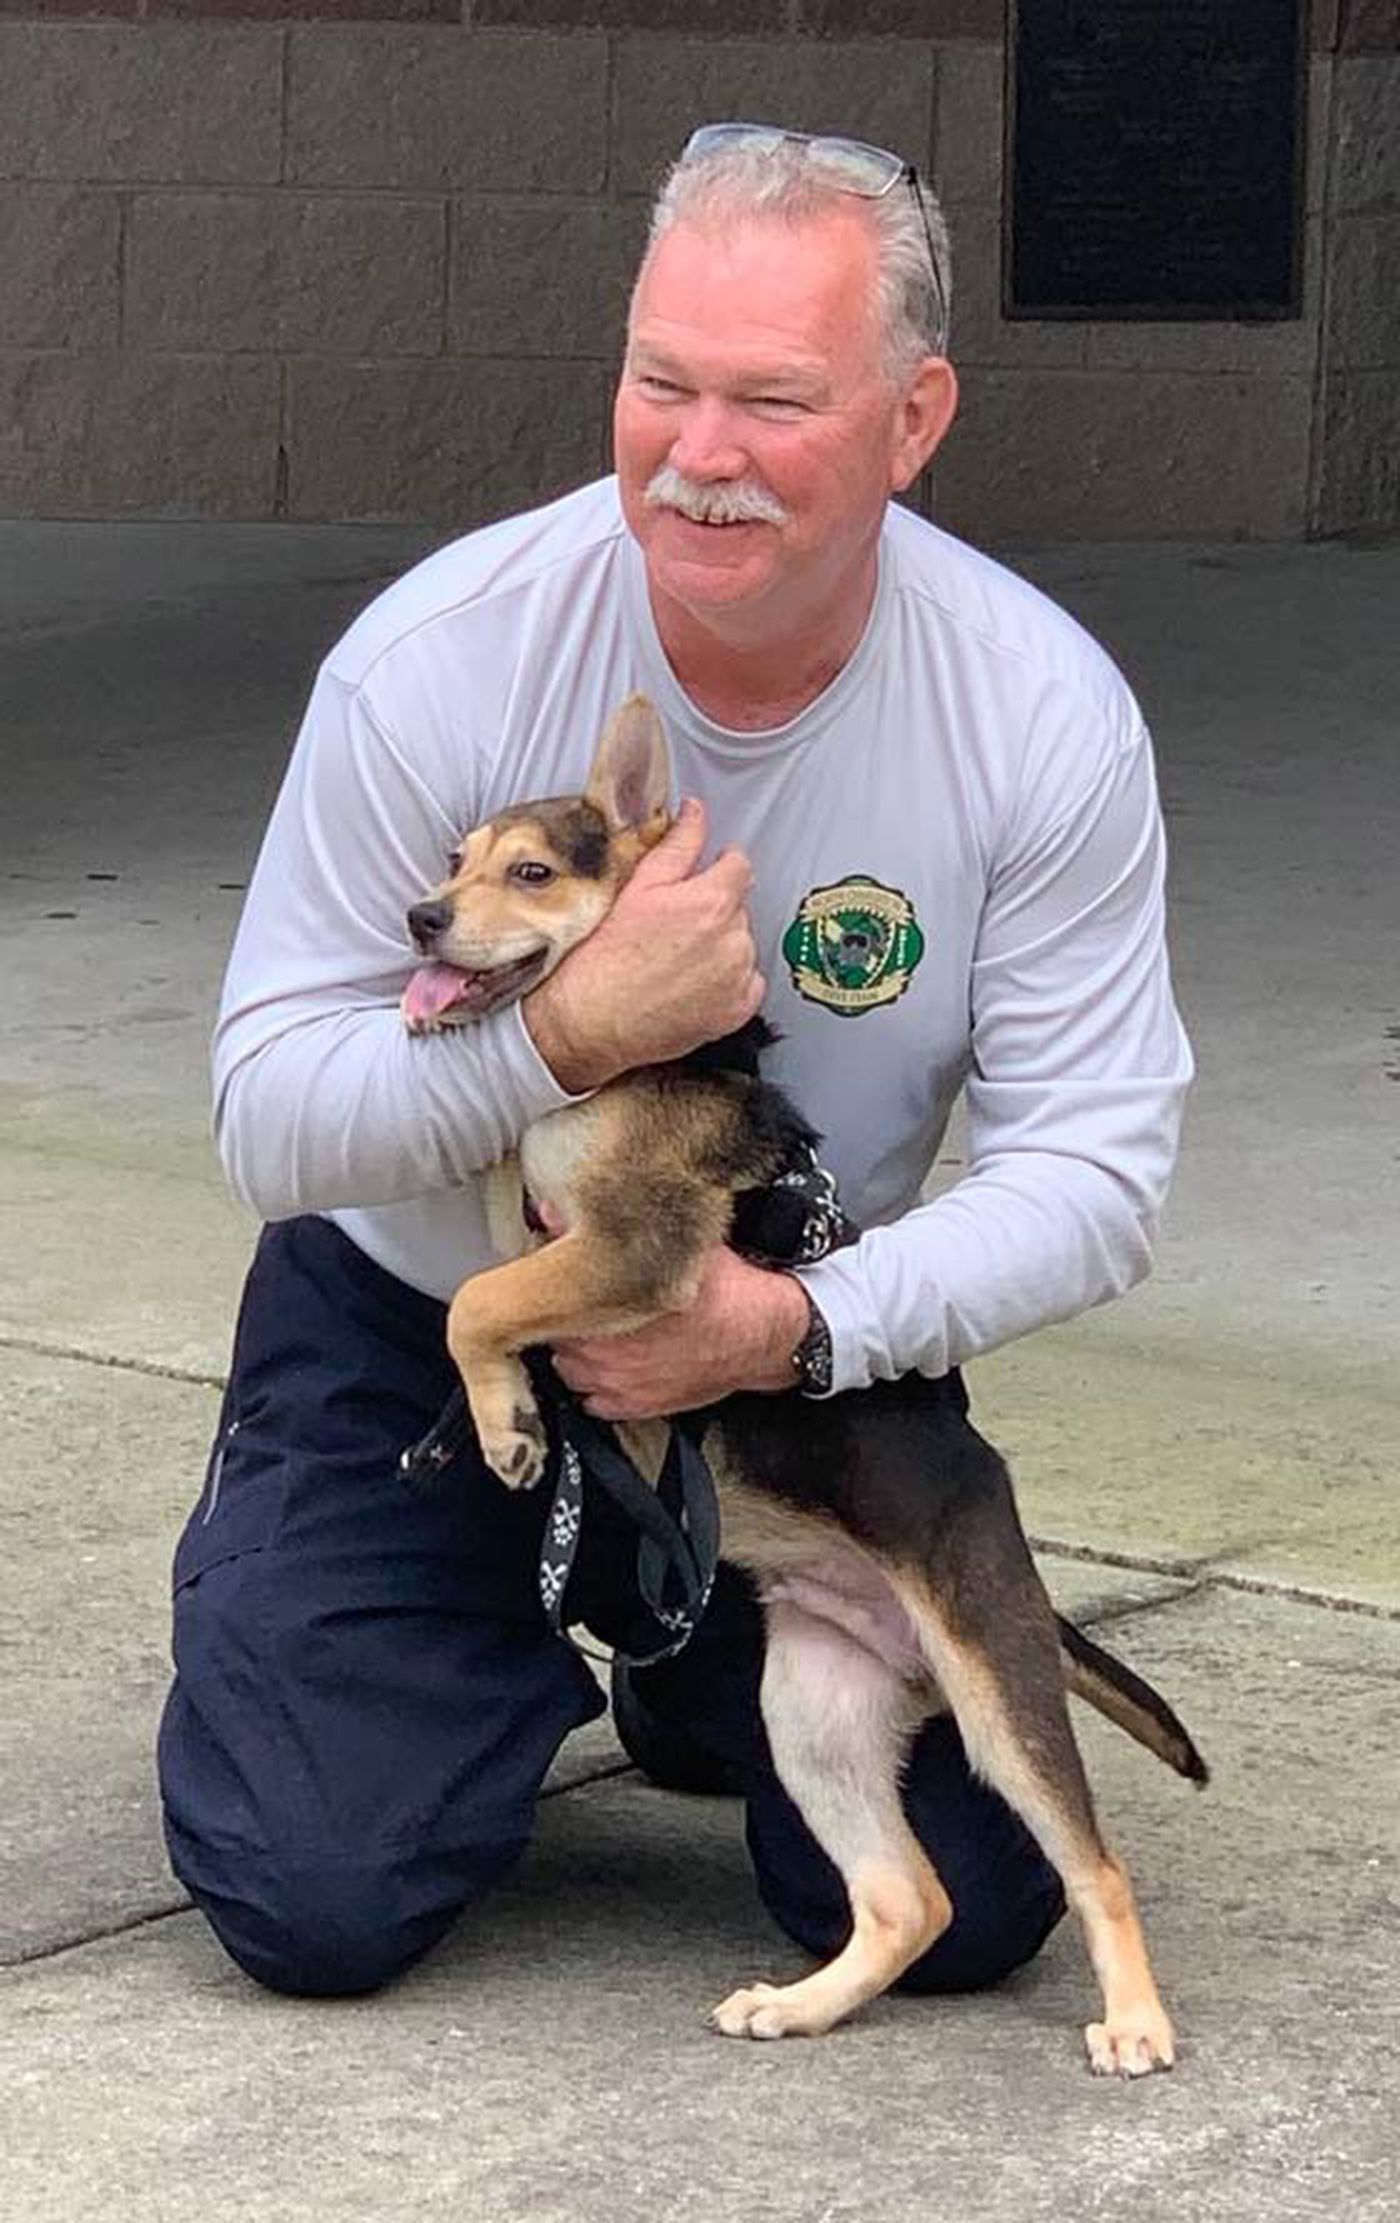 Firefighter adopts puppy he rescued from beneath pile of rocks